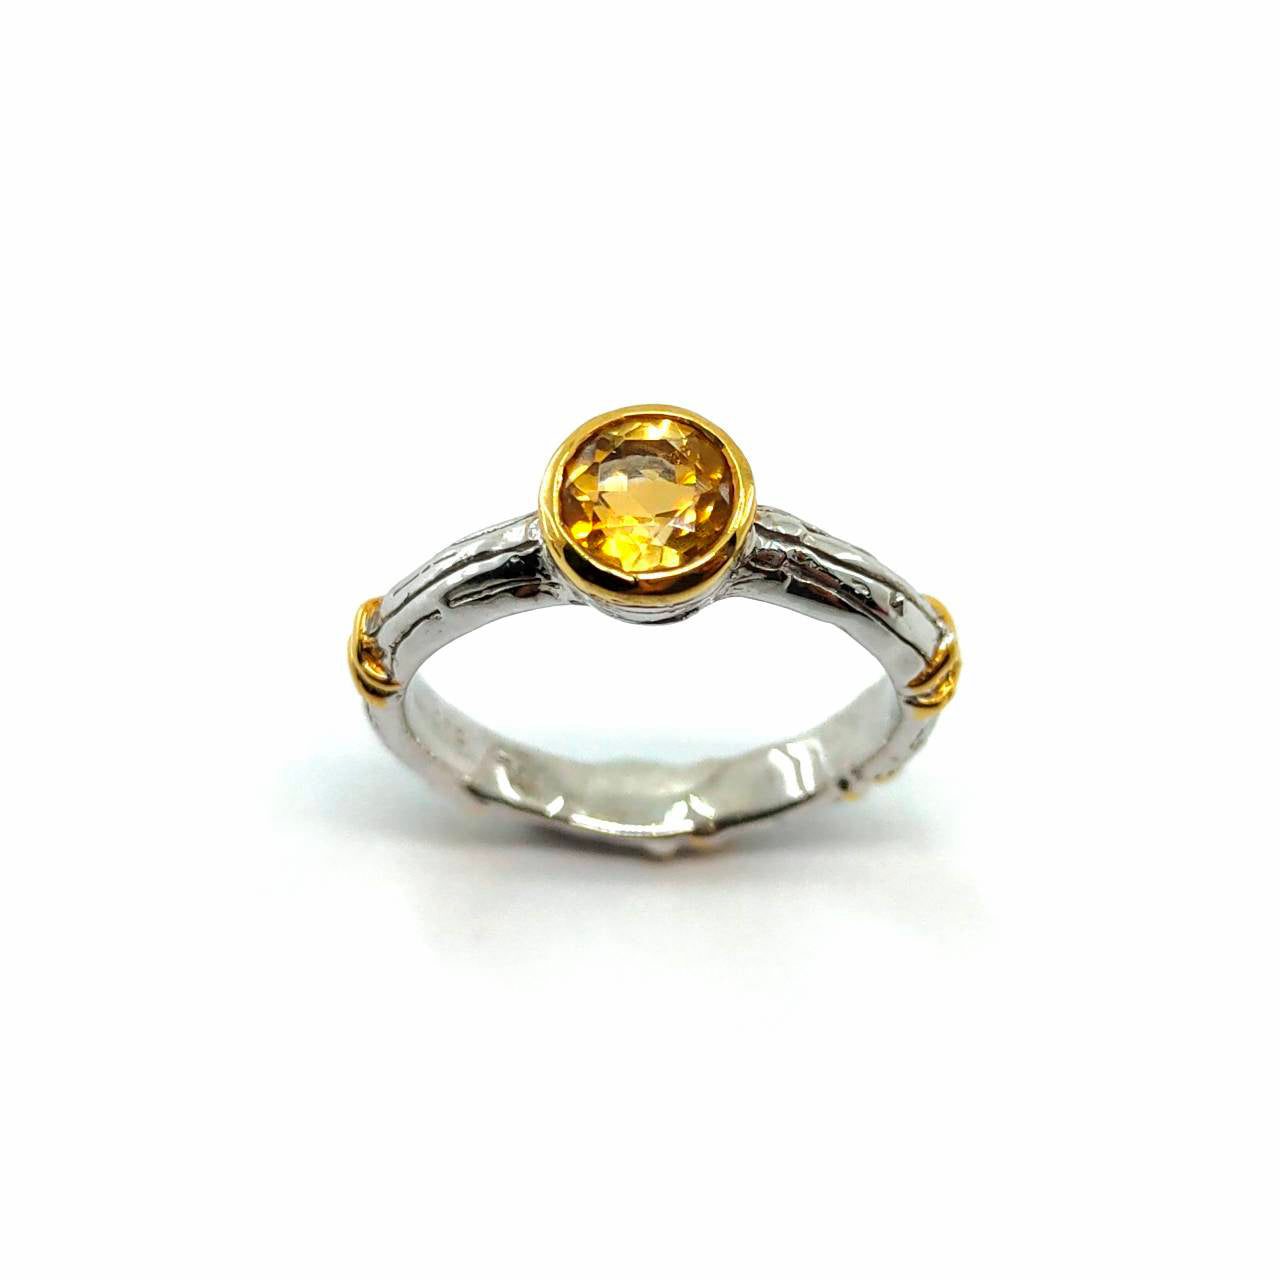 Alice - 925 Sterling Silver Ring, Decorated with Citrine, Plated with 3 Micron 22K Yellow Gold and White Rhodium